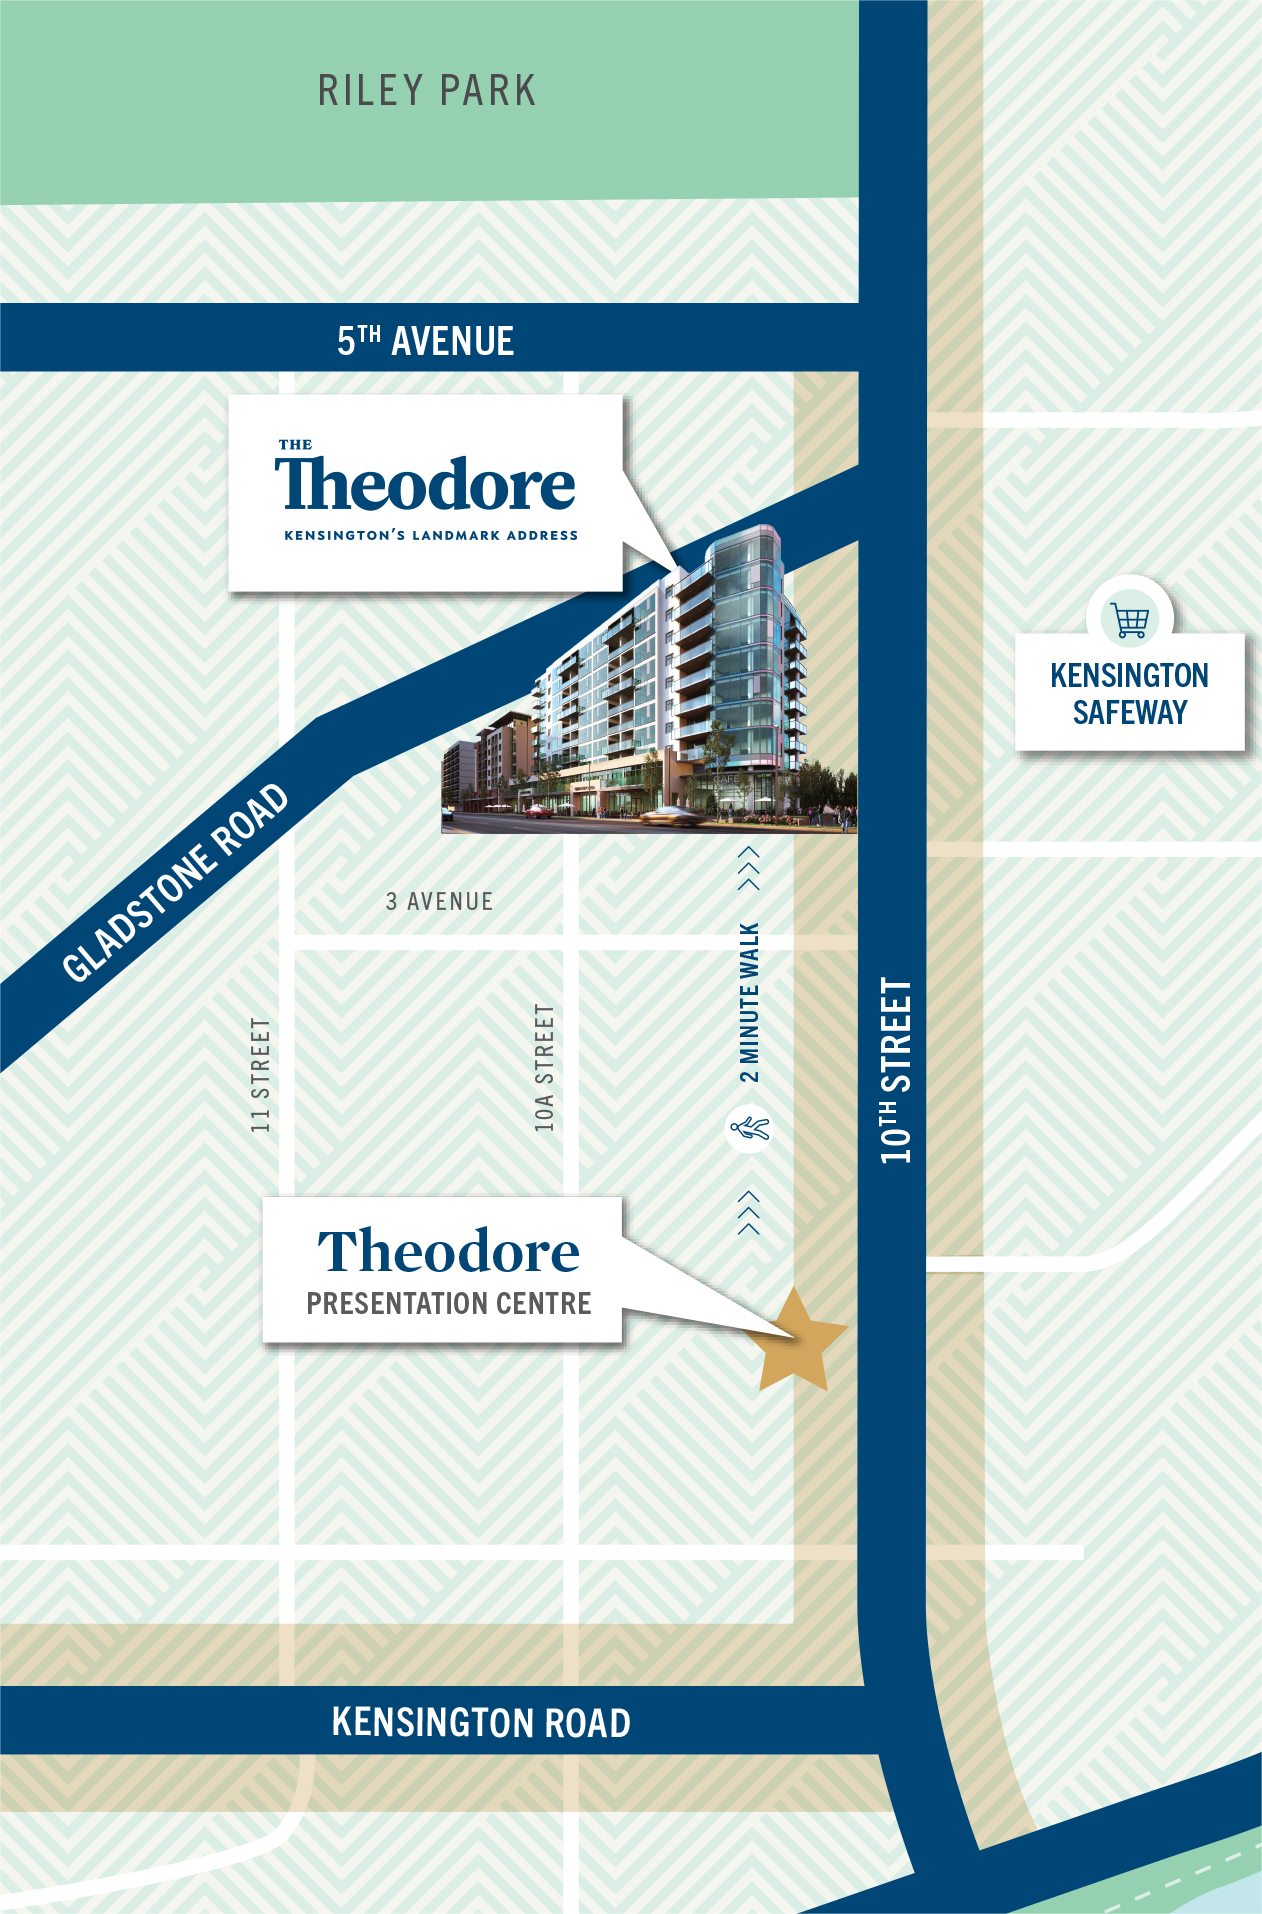 Location map of The Theodore and Presentation Centre & Show Suite